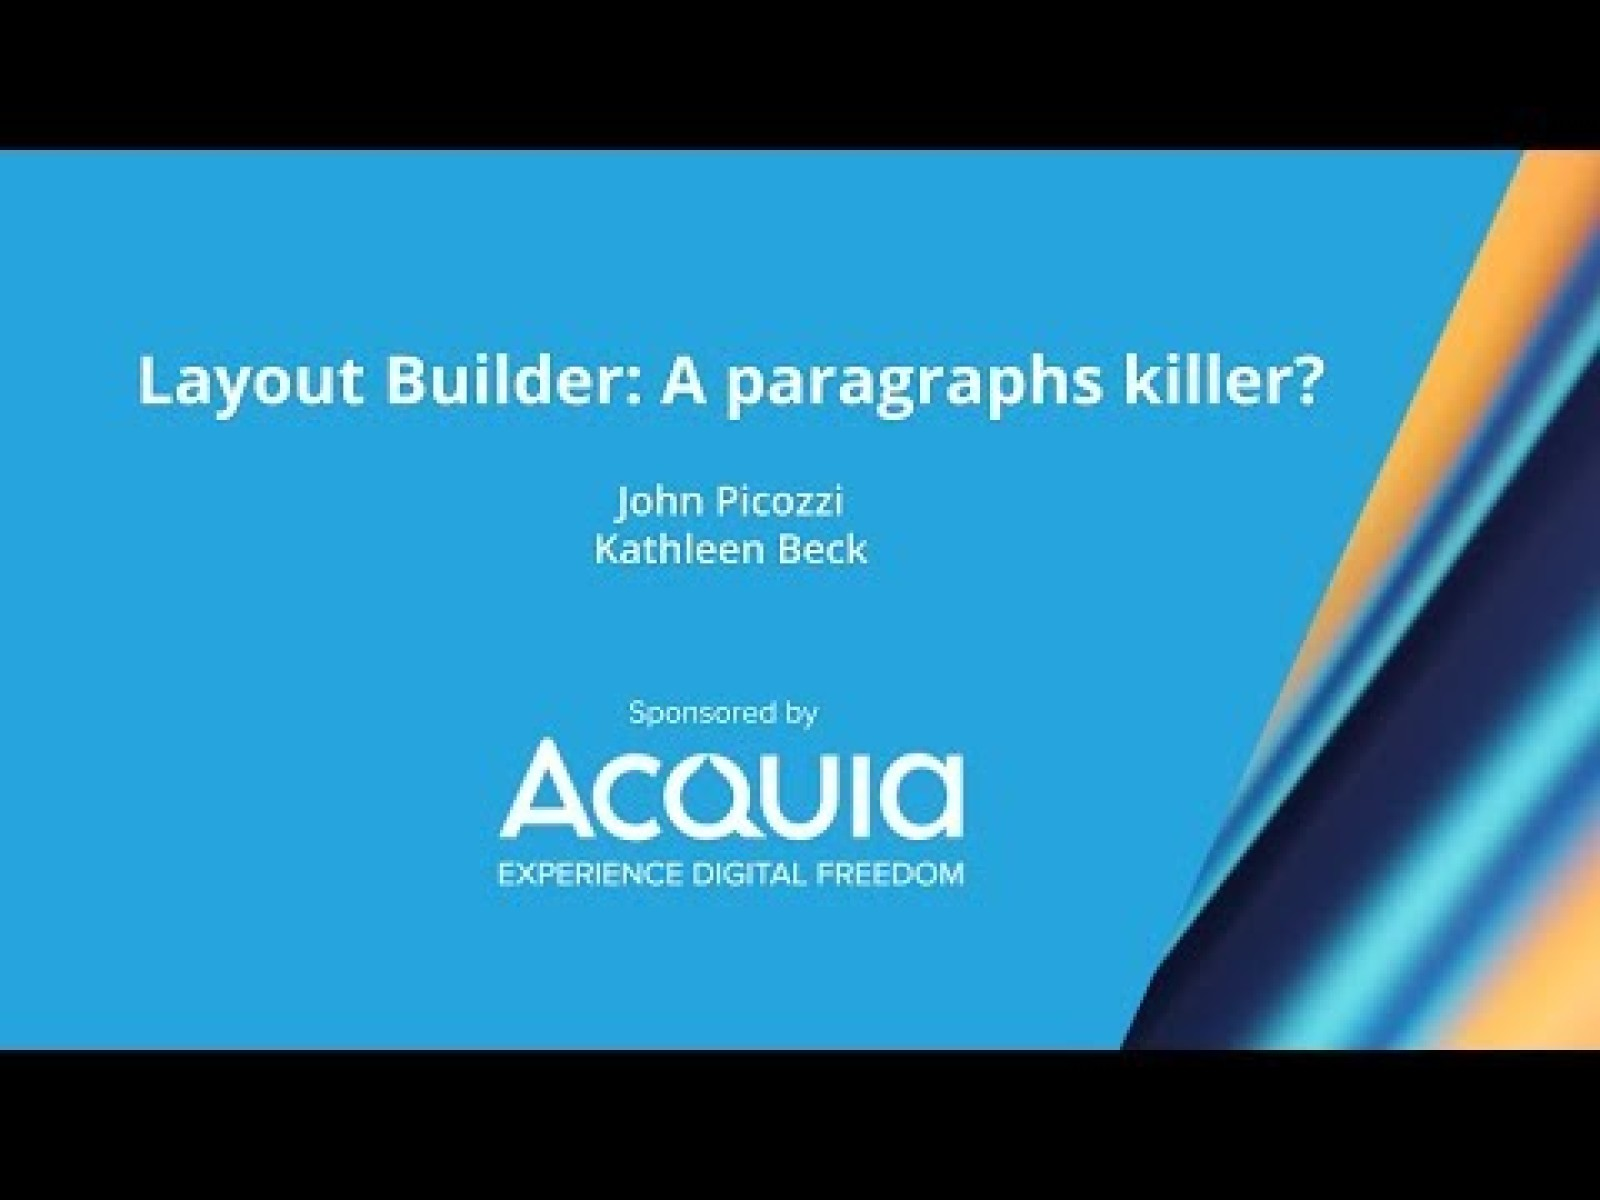 Layout Builder: A paragraphs killer?